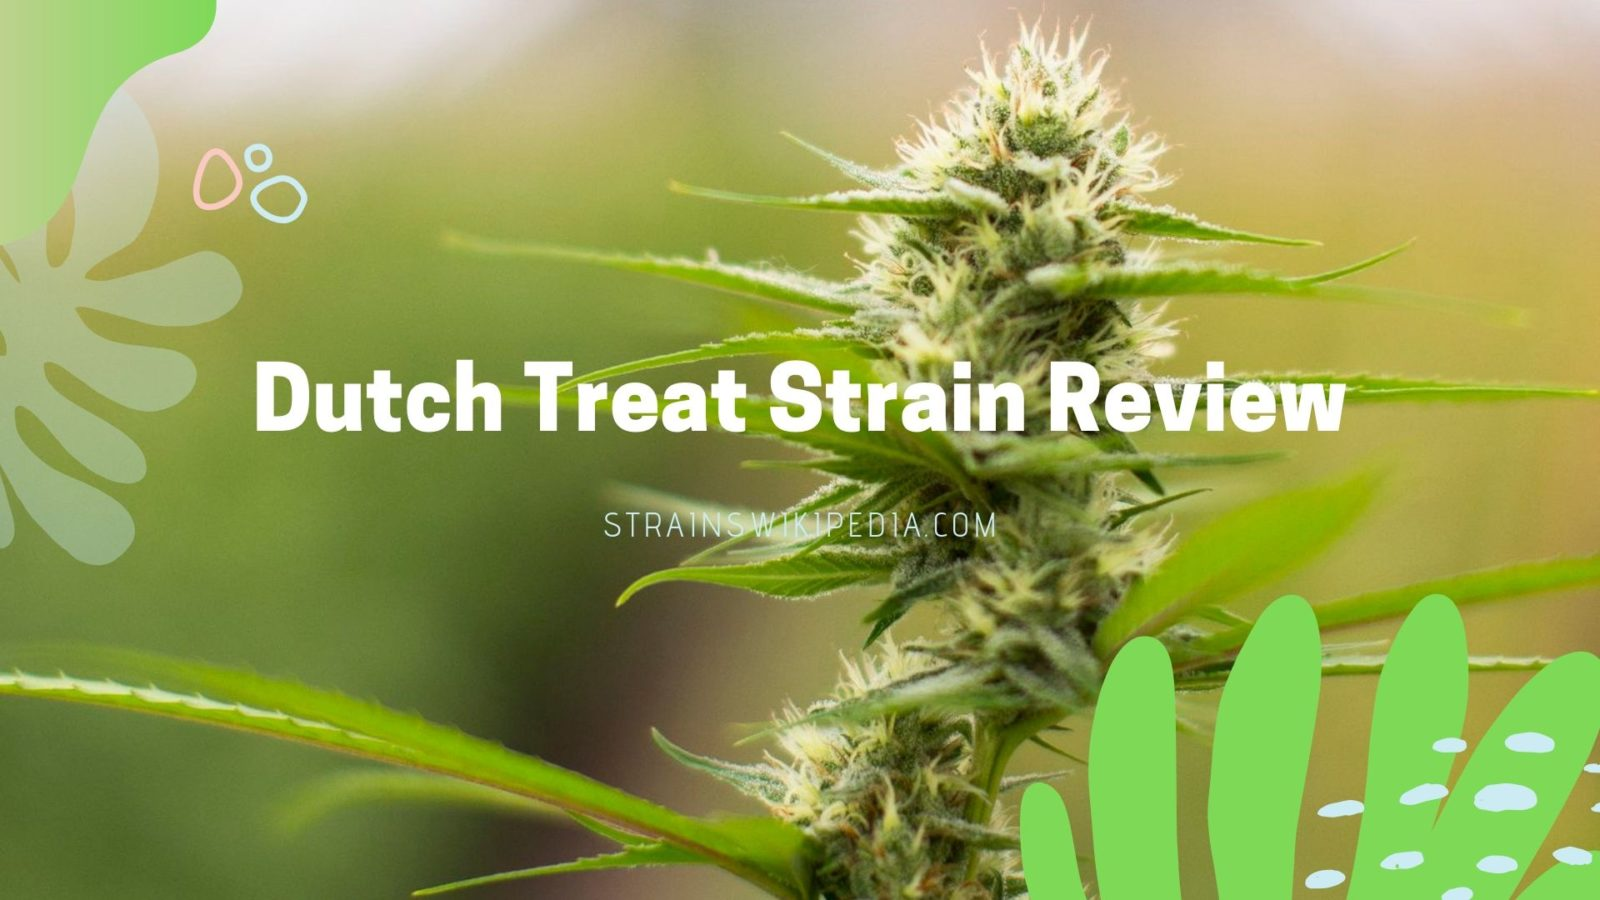 Dutch Treat Strain review